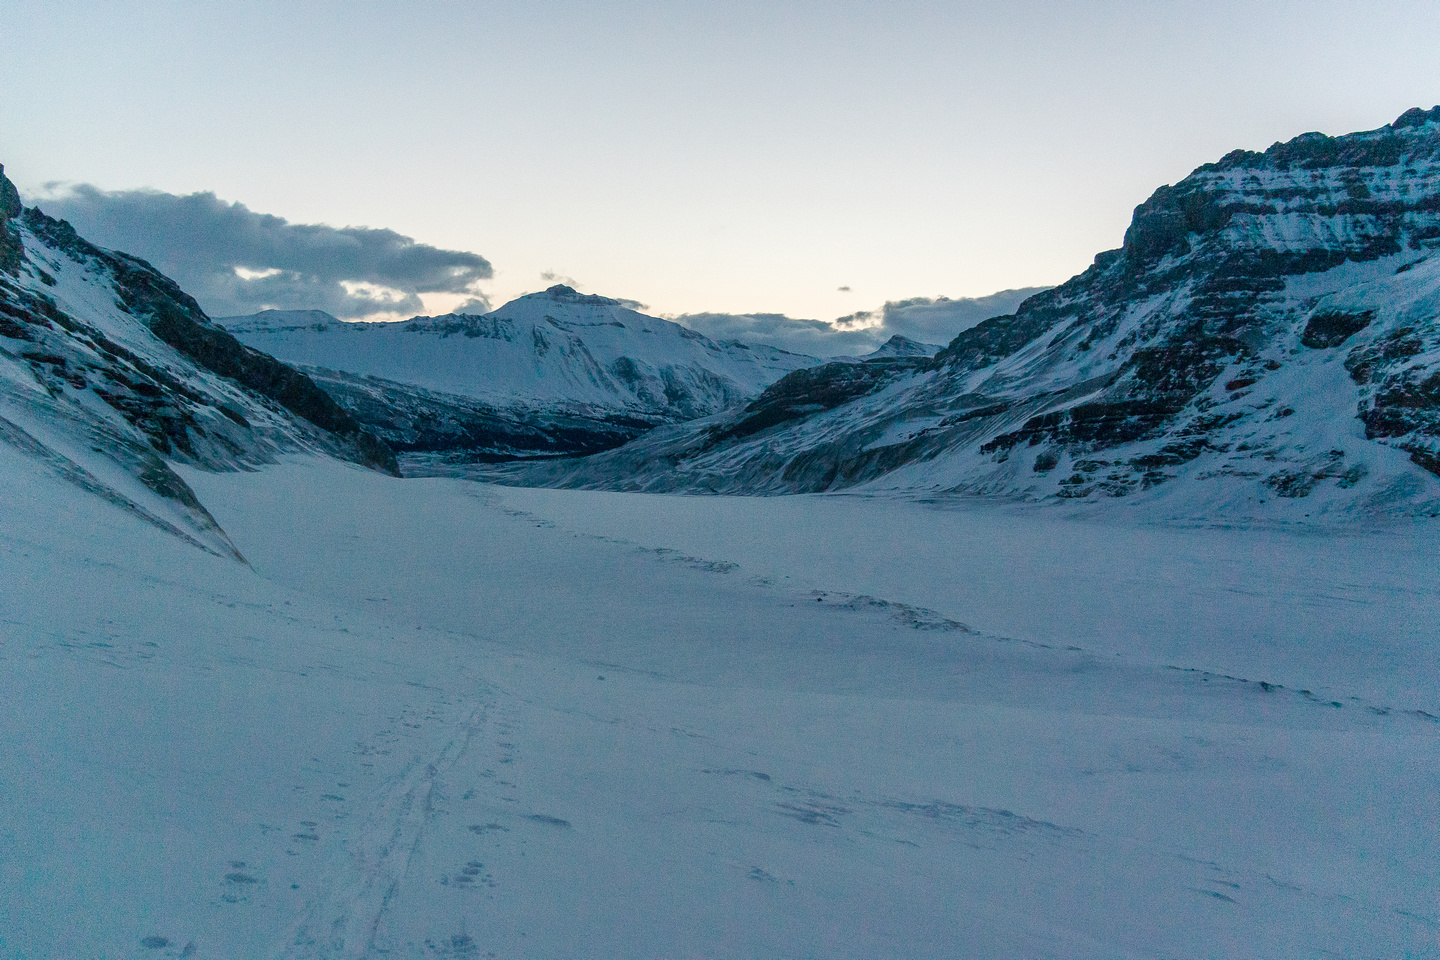 Looking back down the Athabasca Glacier and the long moraine that acts as a nice handrail when visibility is low.